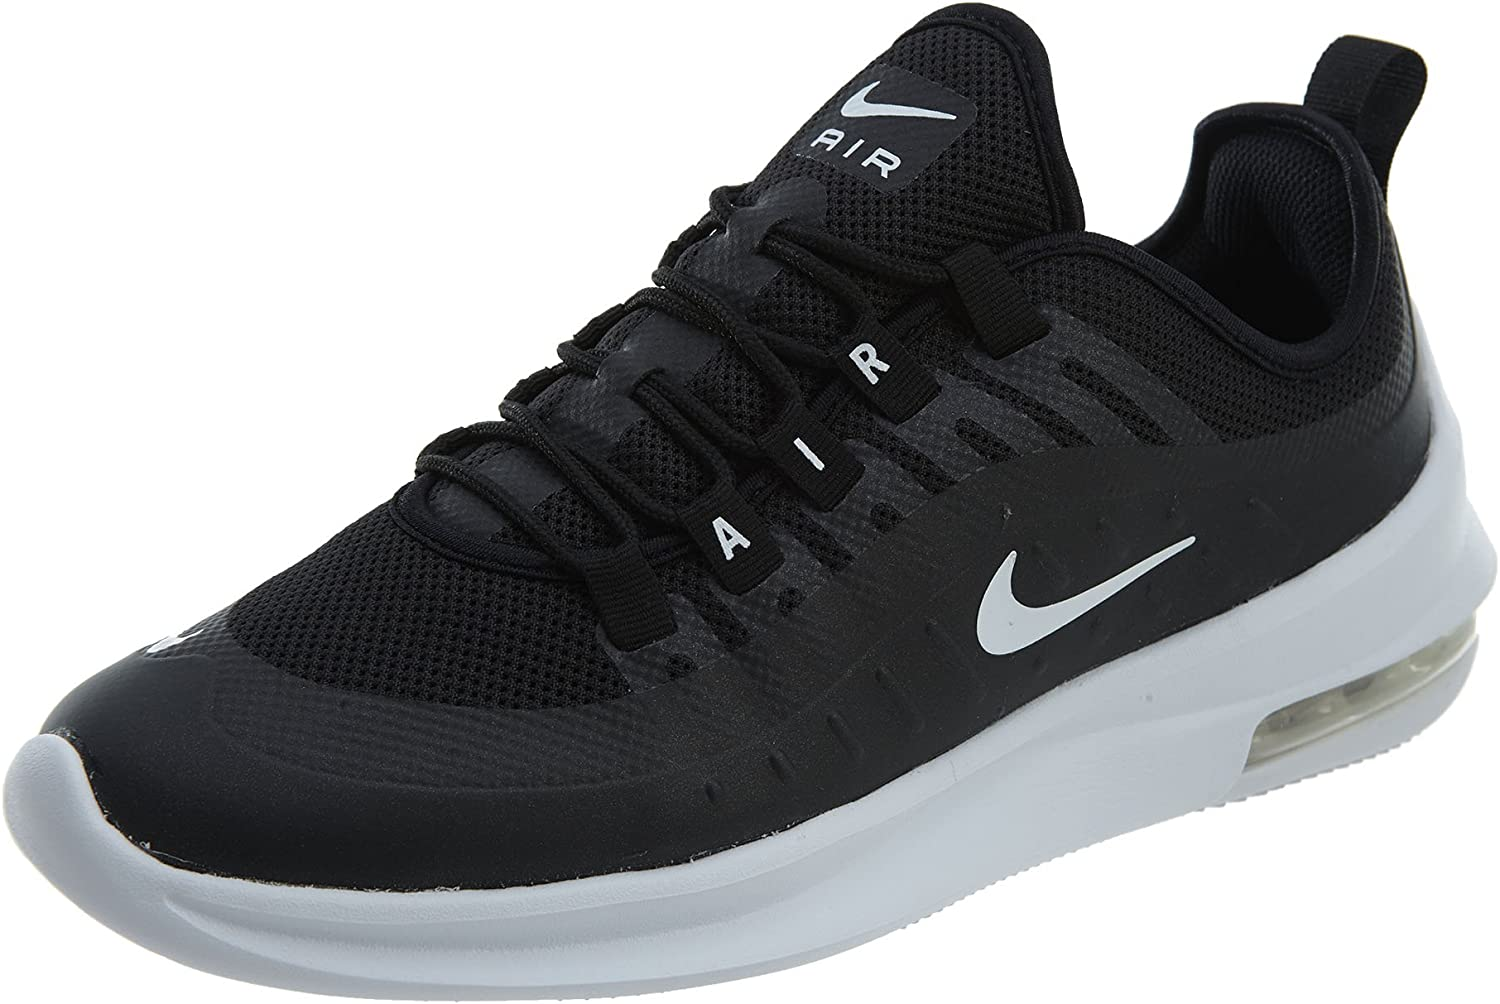 Nike Women's Air Max Axis Running Shoes